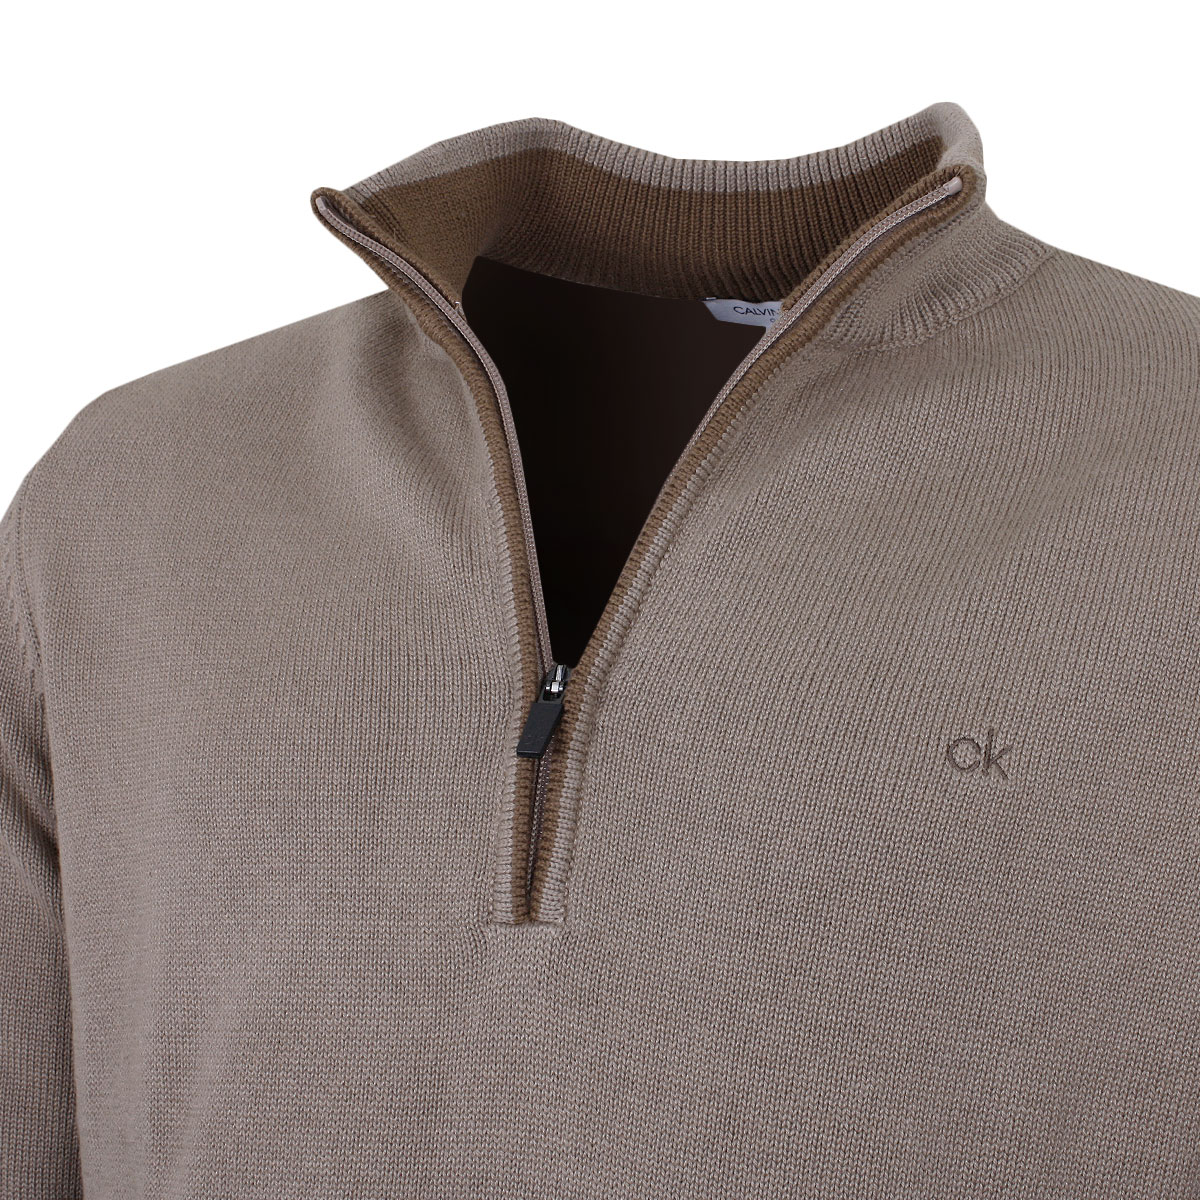 Calvin-Klein-Mens-Chunky-Knit-Cotton-1-2-Zip-CK-Golf-Sweater-25-OFF-RRP thumbnail 35